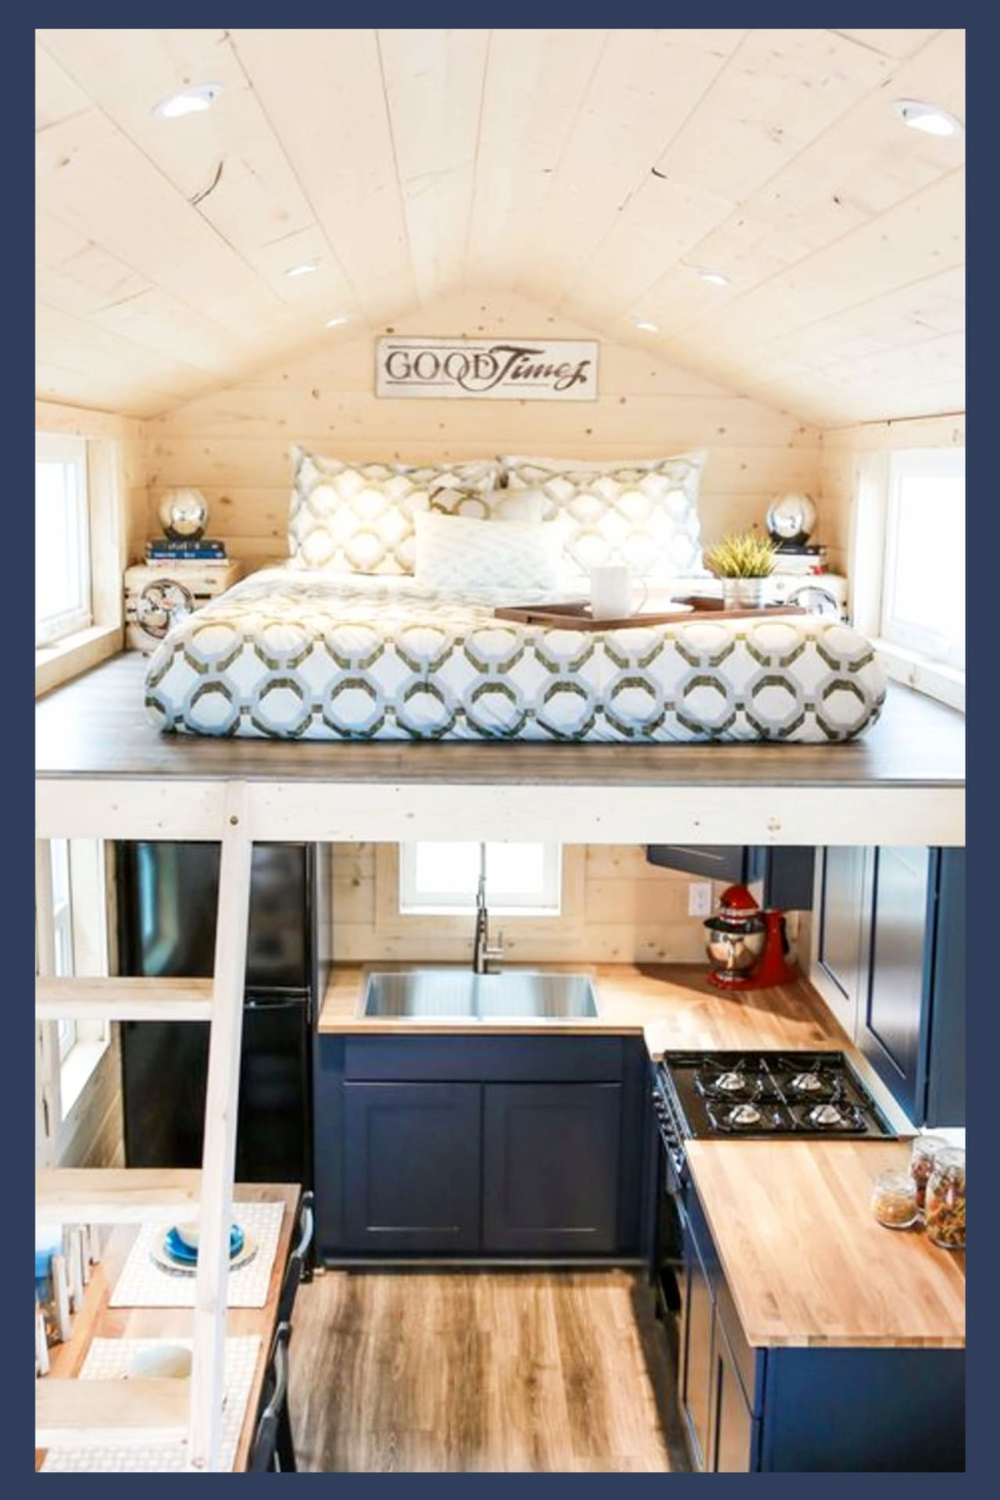 Tiny House Ideas Inside Tiny Houses Pictures Of Tiny Homes Inside And Out Videos Too Tiny House Interior Design Inside Tiny Houses Tiny House Interior